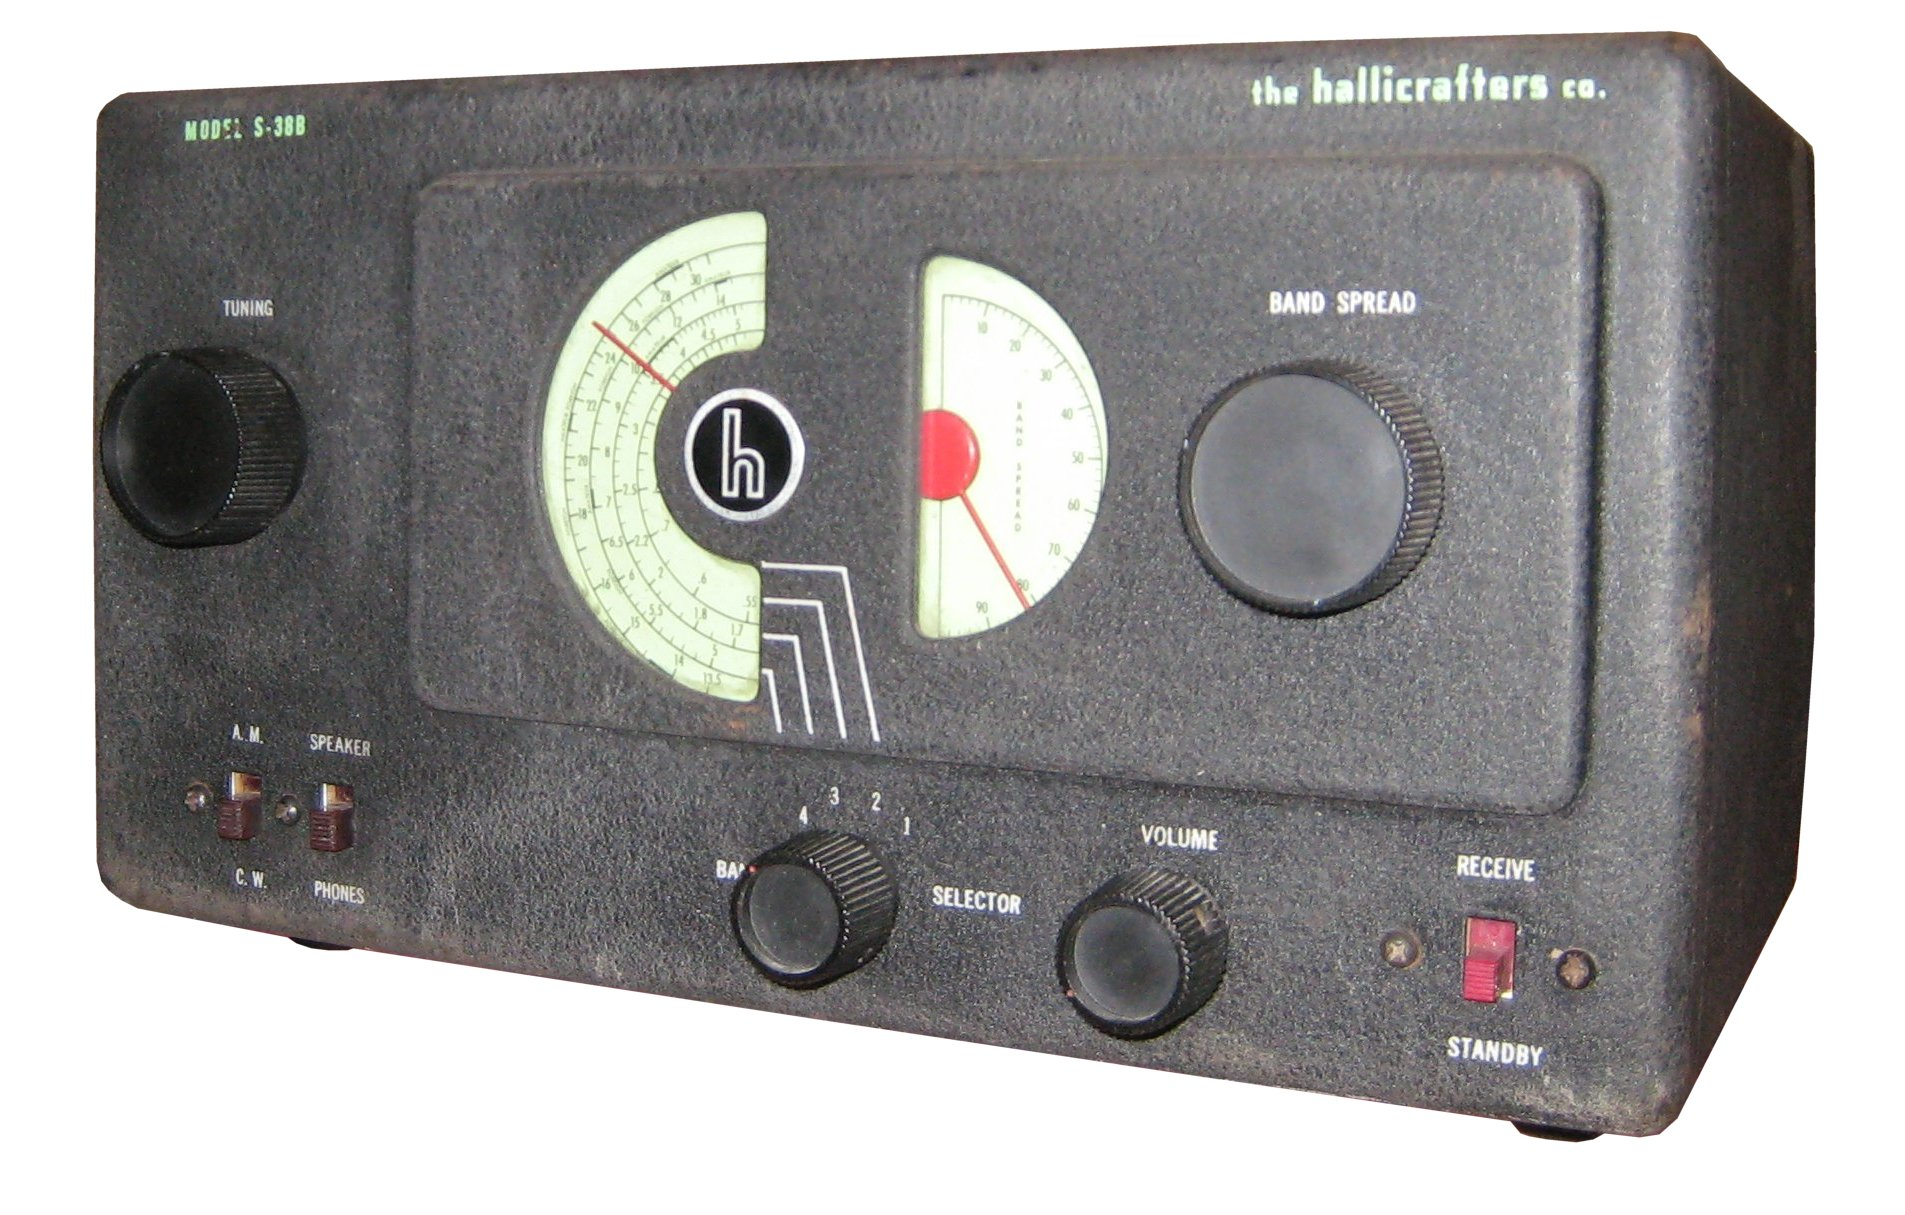 Hallicrafters S38